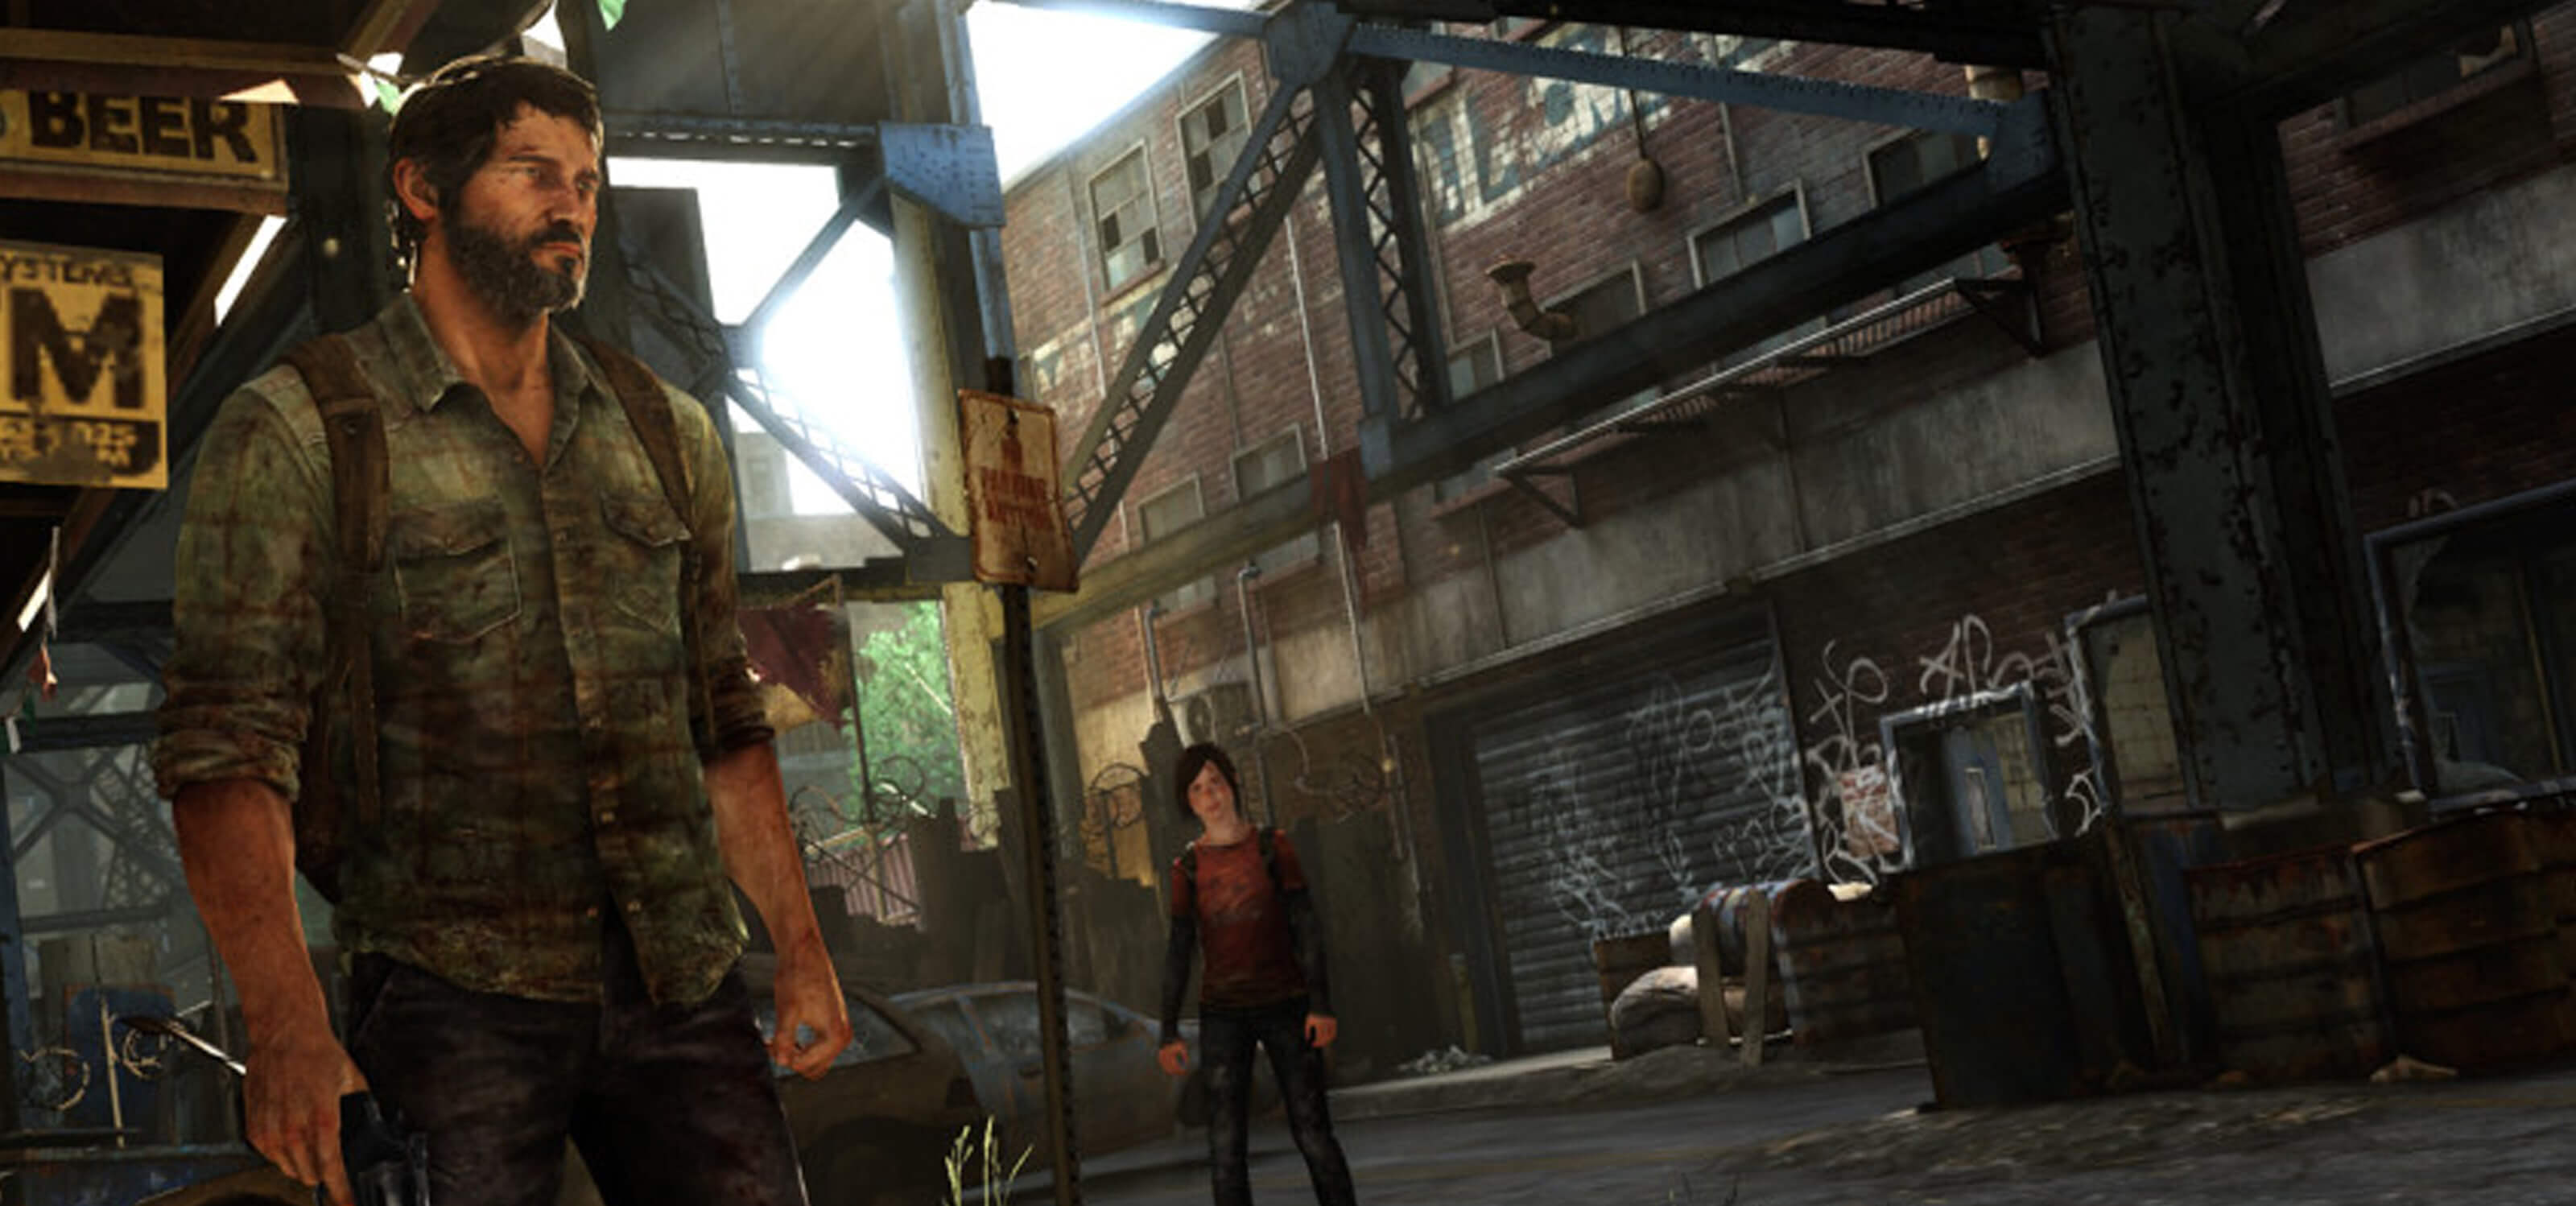 Screenshot from the Naughty Dog game The Last of Us, featuring two characters in a graffiti-covered alley